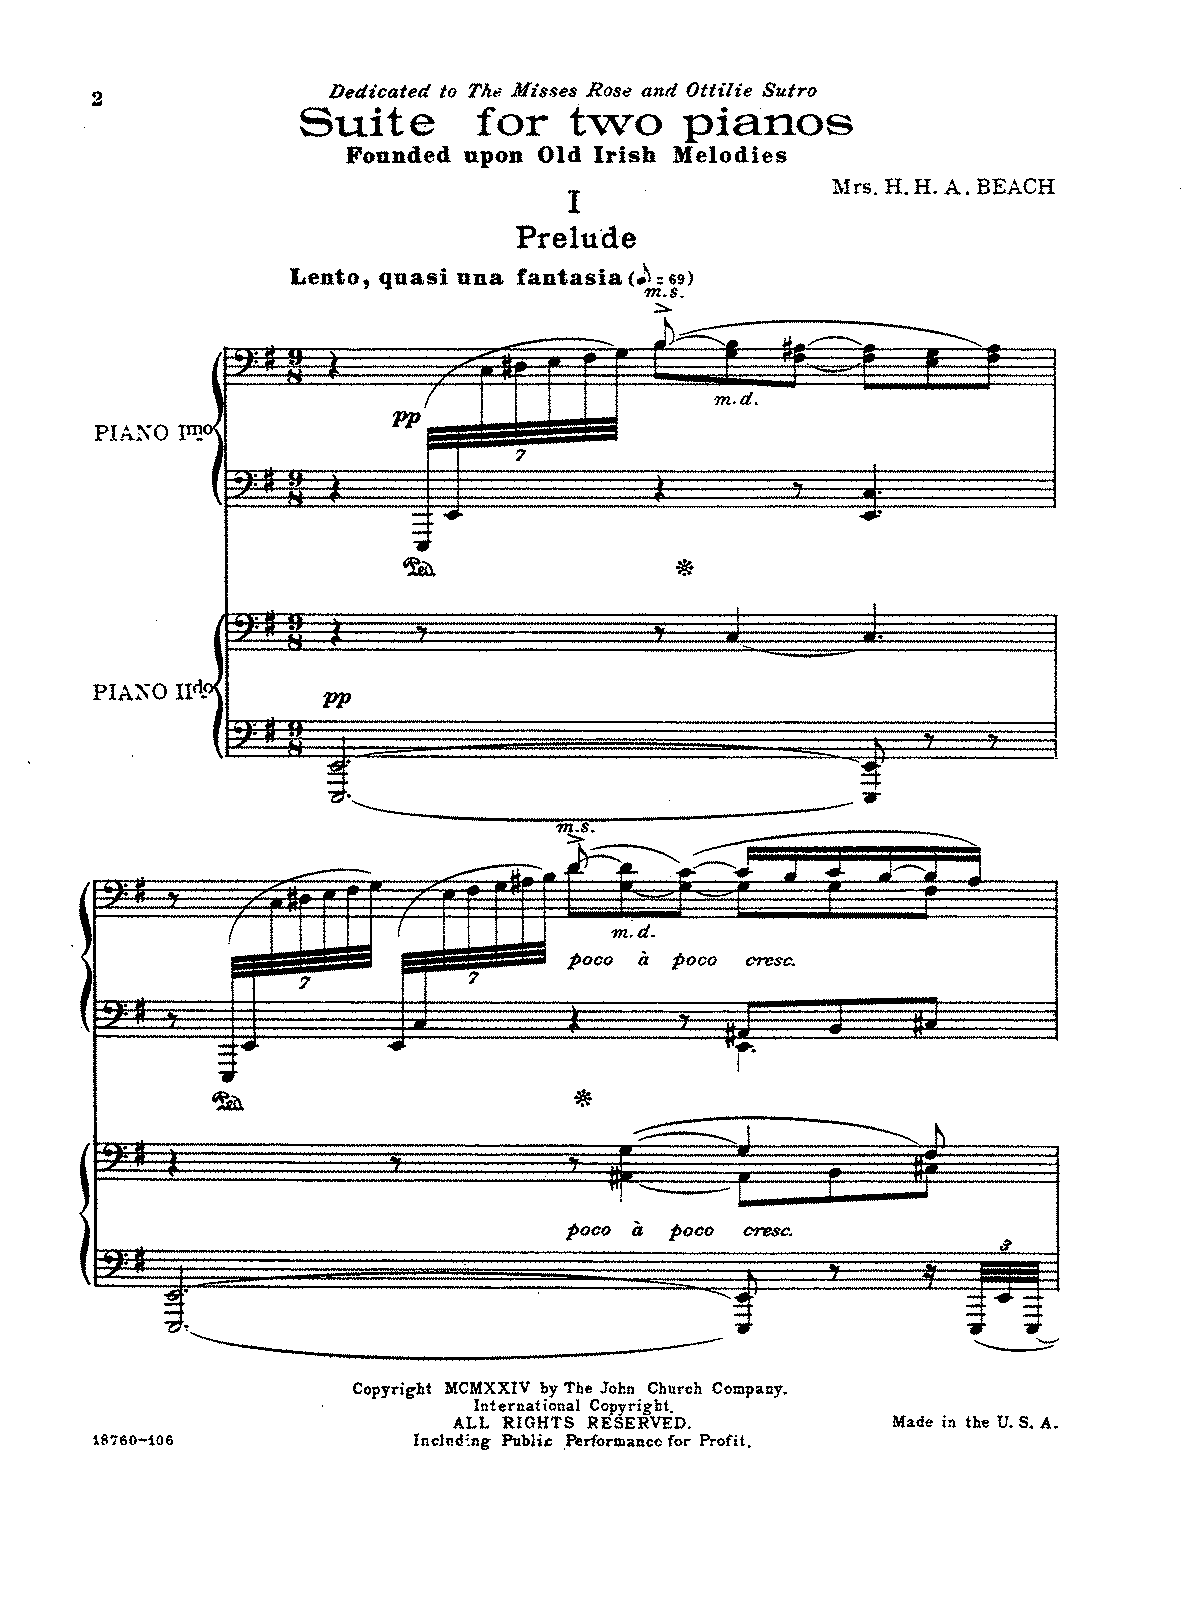 PMLP65075-Beach - Suite for Two Pianos Founded upon Old Irish Melodies, Op. 104.pdf